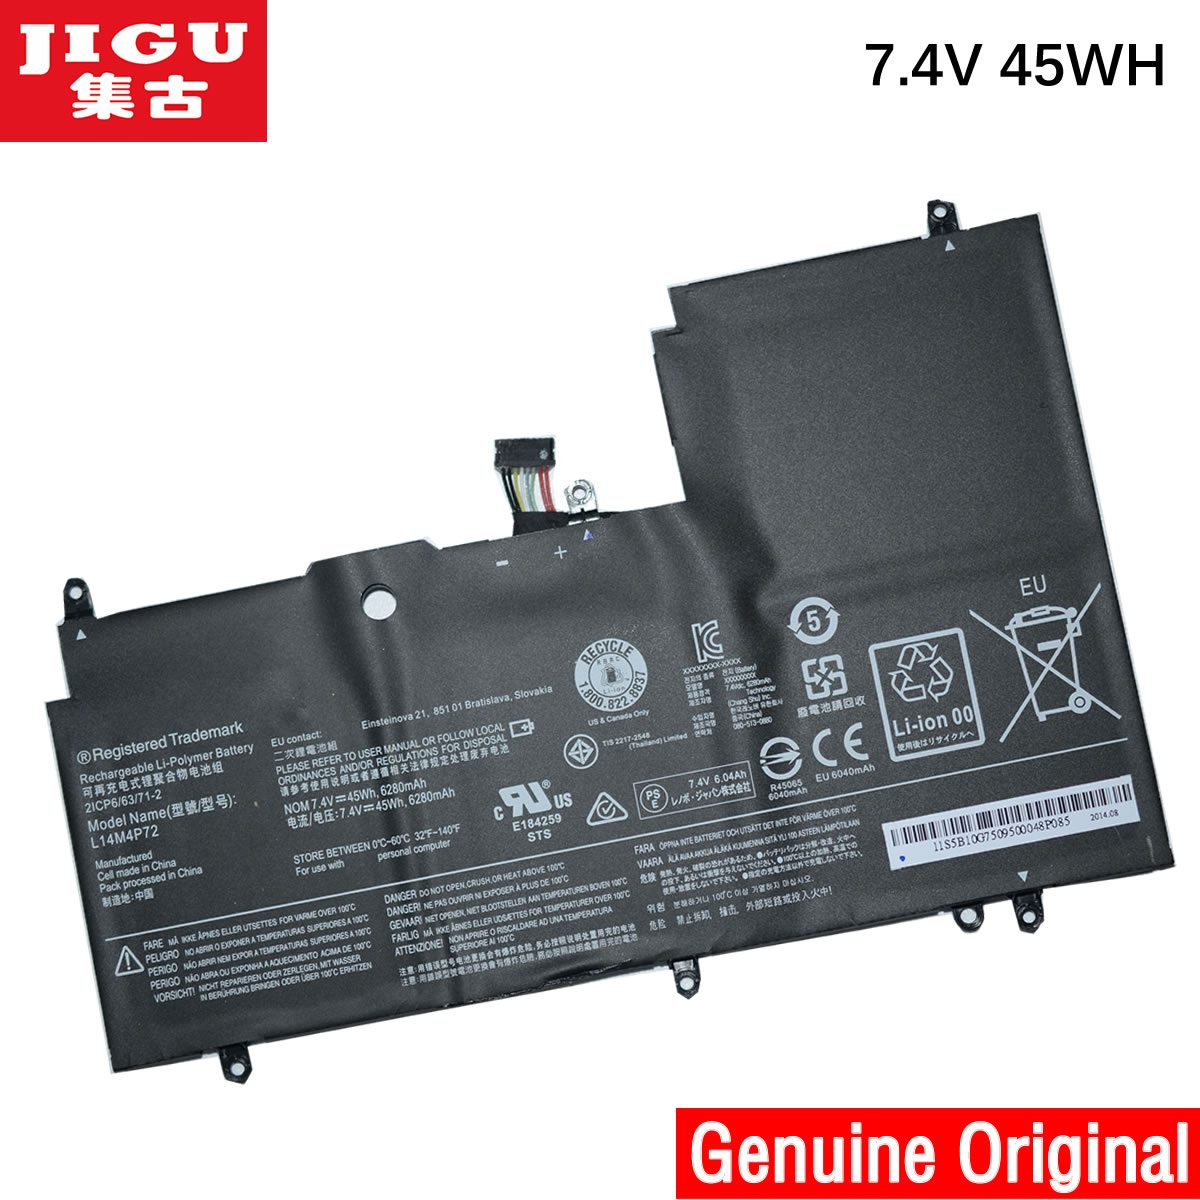 JIGU laptop battery L14M4P72 L14S4P72 FOR LENOVO YOGA 3 3 14 Yoga 700 700 14ISK Yoga3 14-IFI Yoga3 14-ISE original for lenovo for yoga 3 14 yoga3 14 3 14 hdd hard drive cable connector btuu1 hdd ffc cable nbx0001fw10 test